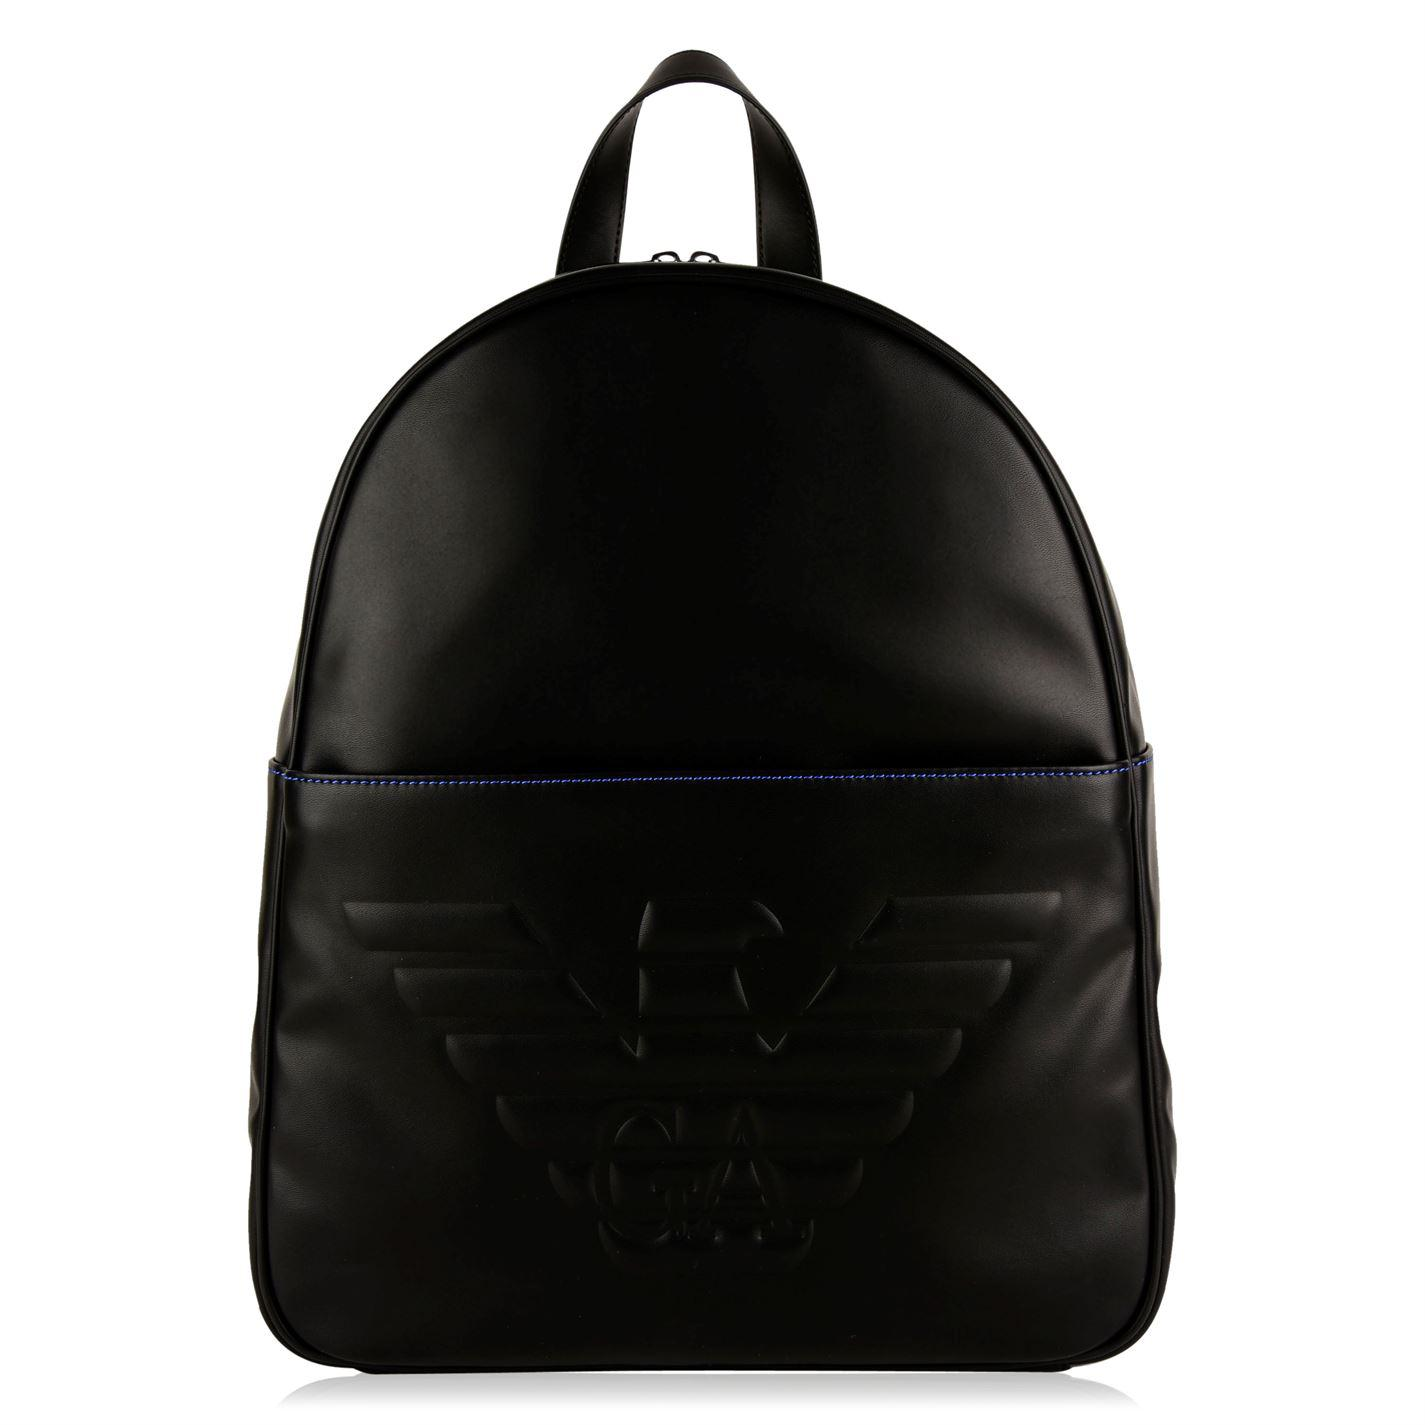 Emporio Armani Debossed Eagle Backpack in Black for Men - Lyst 9ca293668a